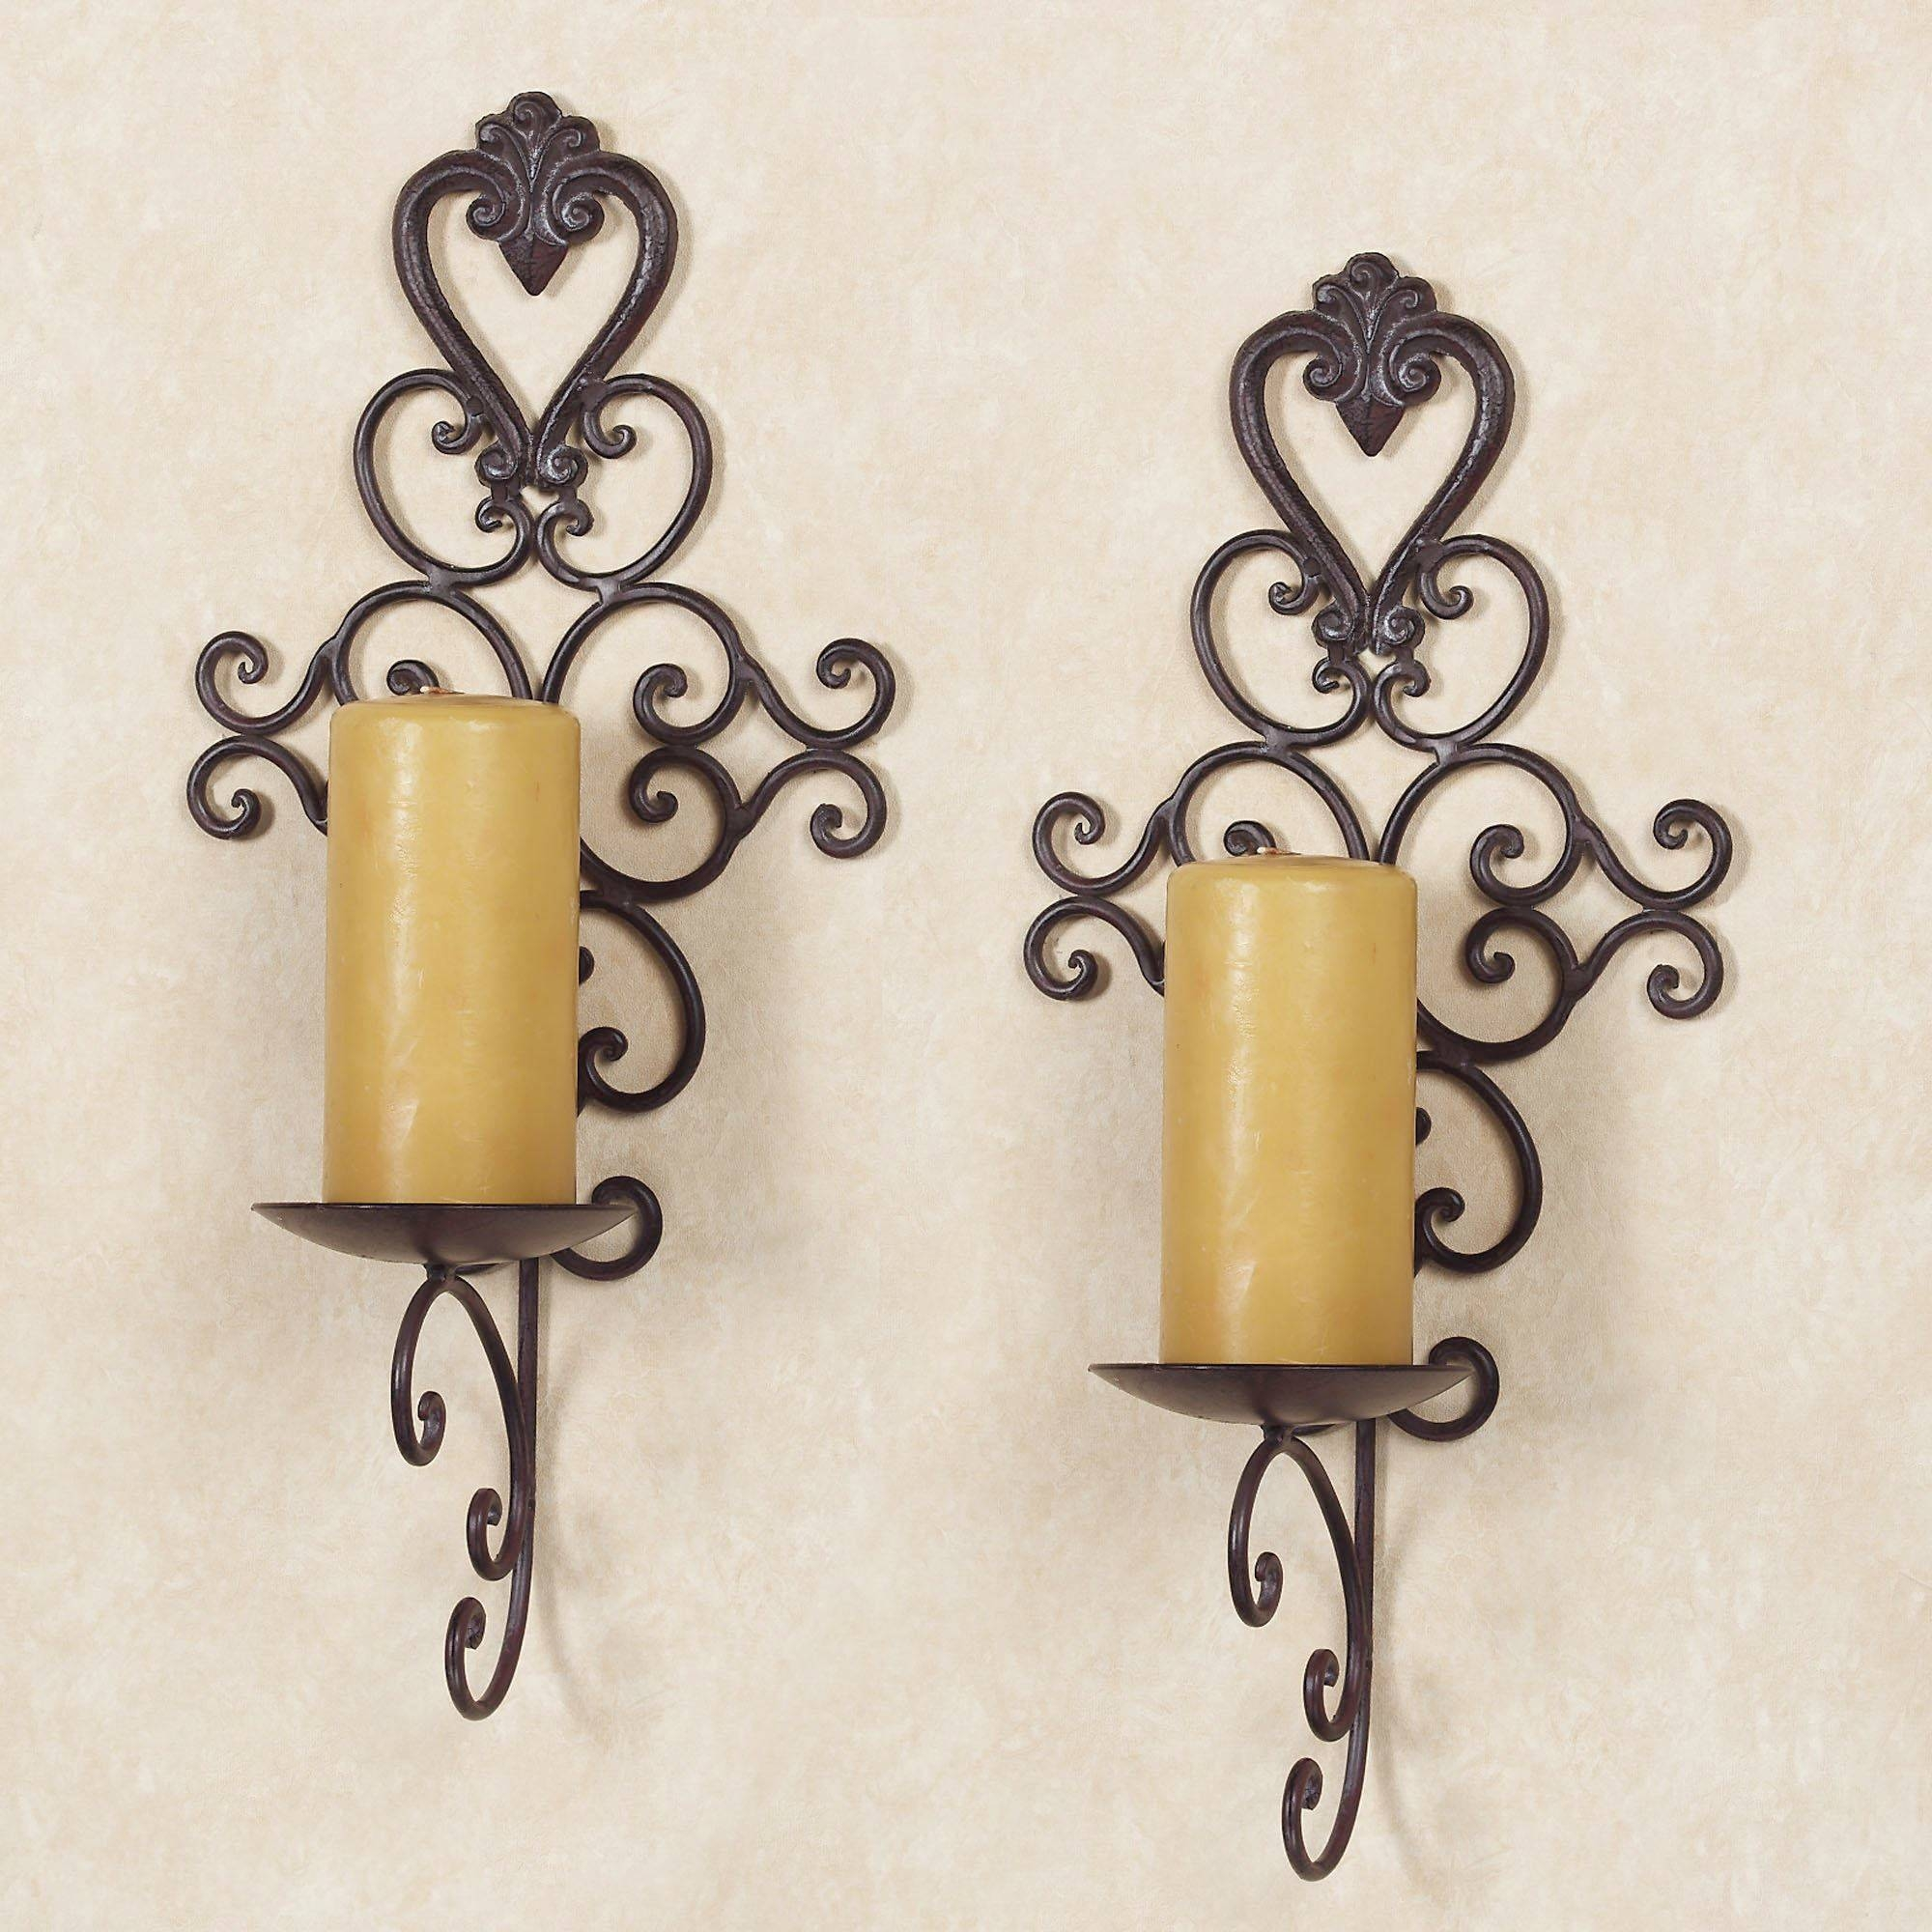 Wall Candle Holder Design Ideas — The Decoras Jchansdesigns In 2017 Metal Wall Art Candle Holder (View 16 of 20)